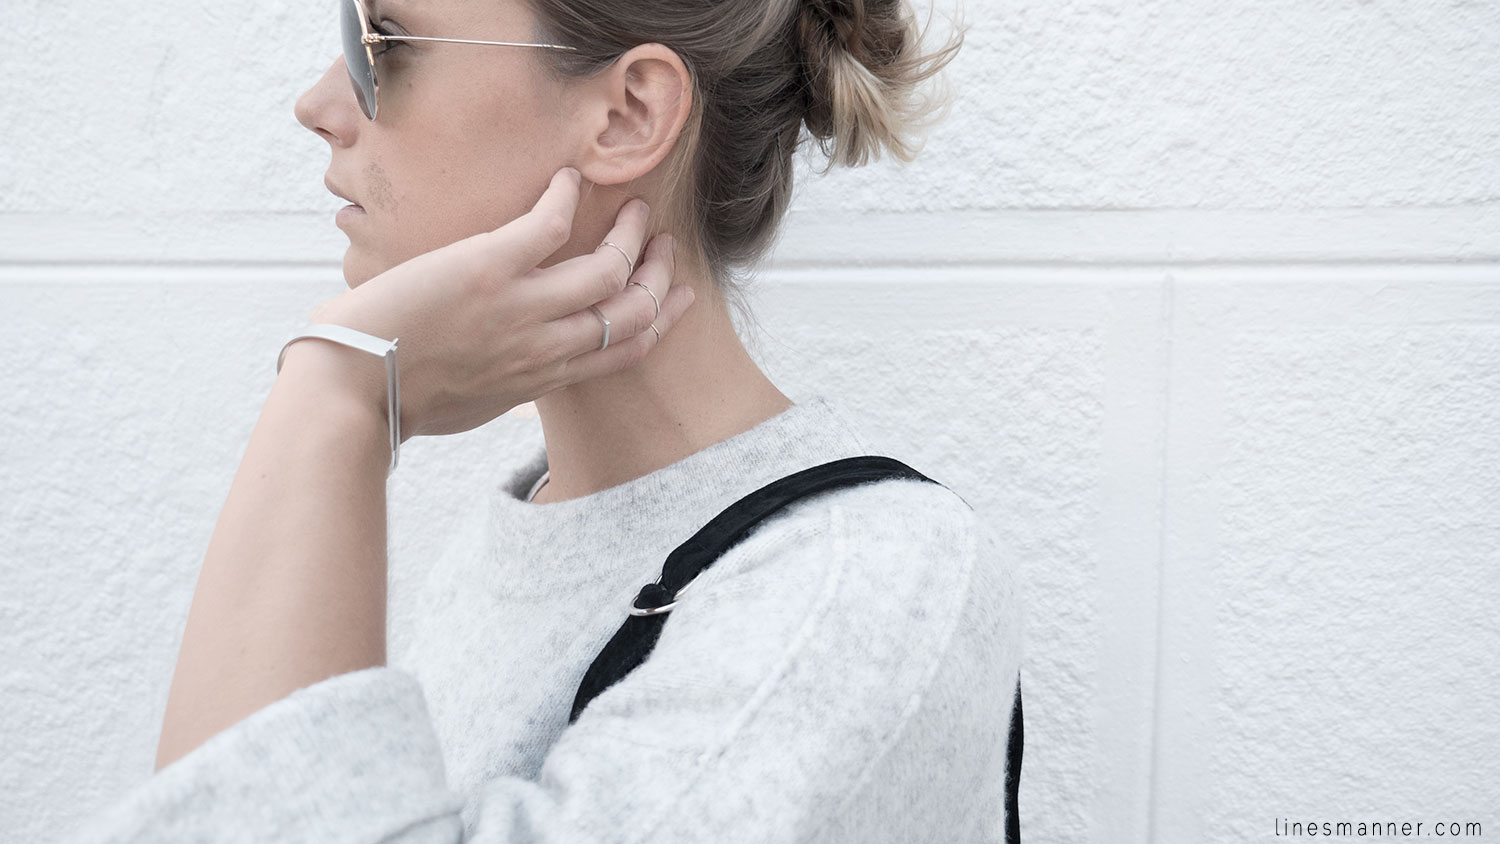 Lines-Manner-Fashion-Collaboration-The_Demeler-Monochrome-Grey_on_Grey-Fresh-Brightly-Outfit-Simplicity-Details-Trend-Minimalist-Flowy-Layering-Sleeves-Sweater_Dress-21